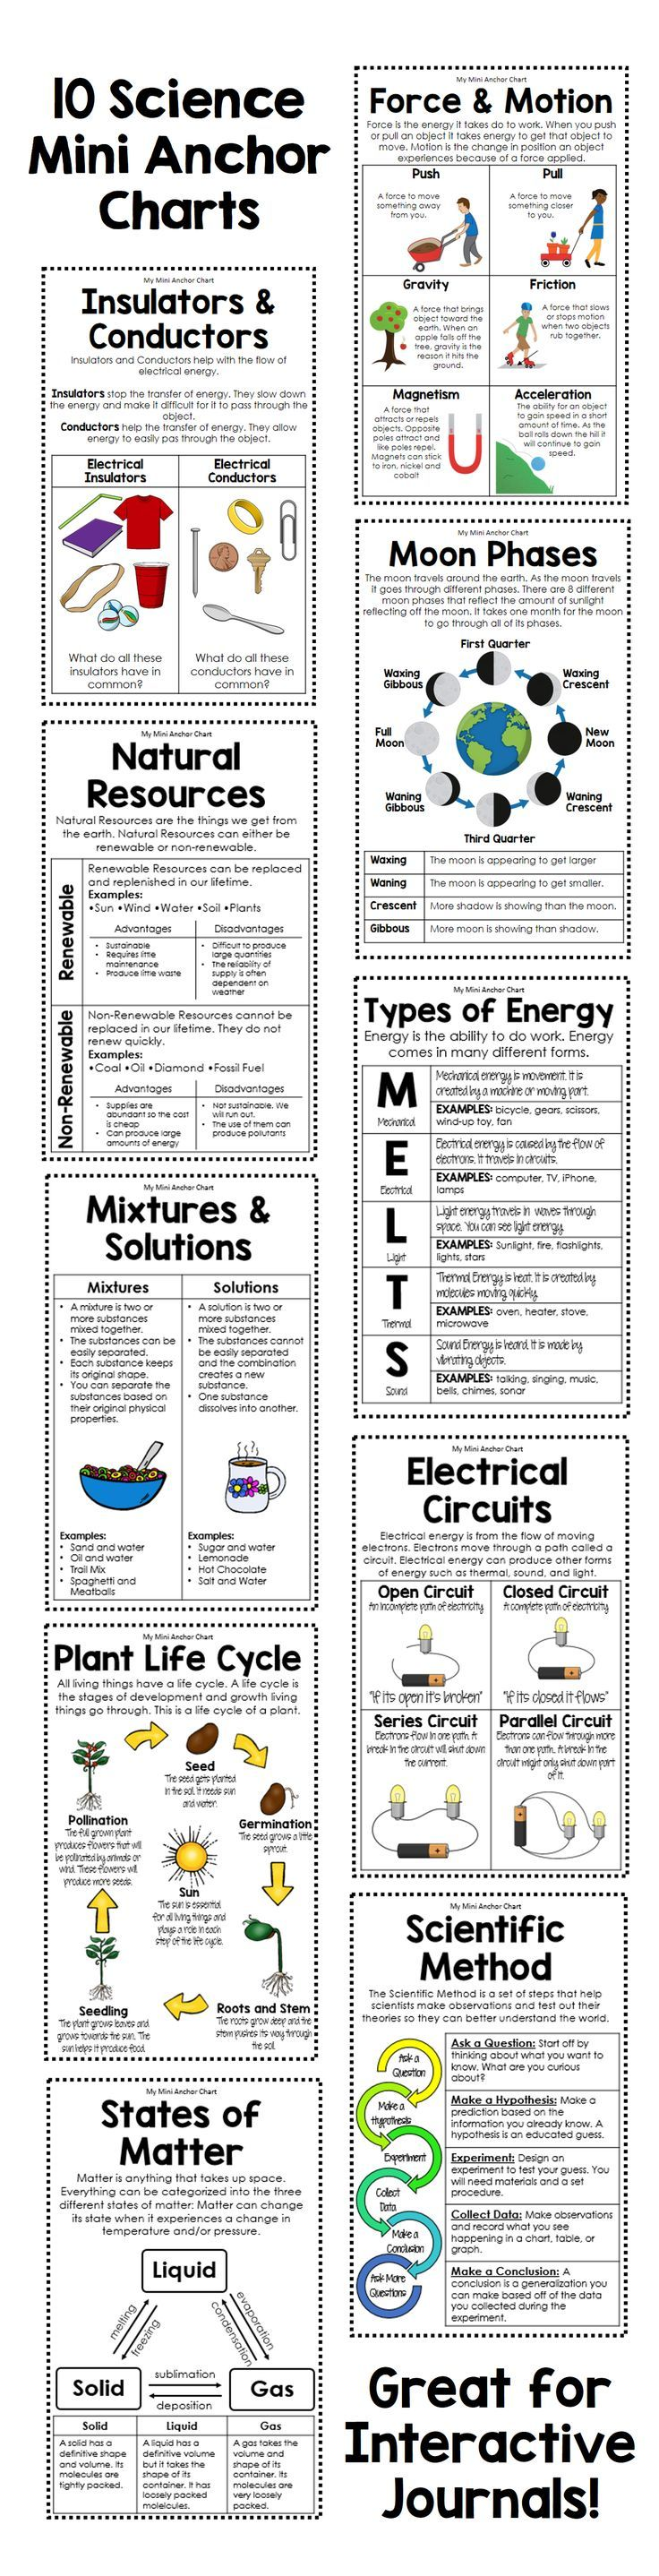 Get these 10 anchor charts to help your students remember important science concepts. Topics included: Force and Motion, Insulators and Conductors, Moon Phases, The Water Cycle, Plant Life Cycle, Natural Resources, Types of Energy, The Scientific Method, and States of Matter. These low-prep printables are anchor to use in any science journal!